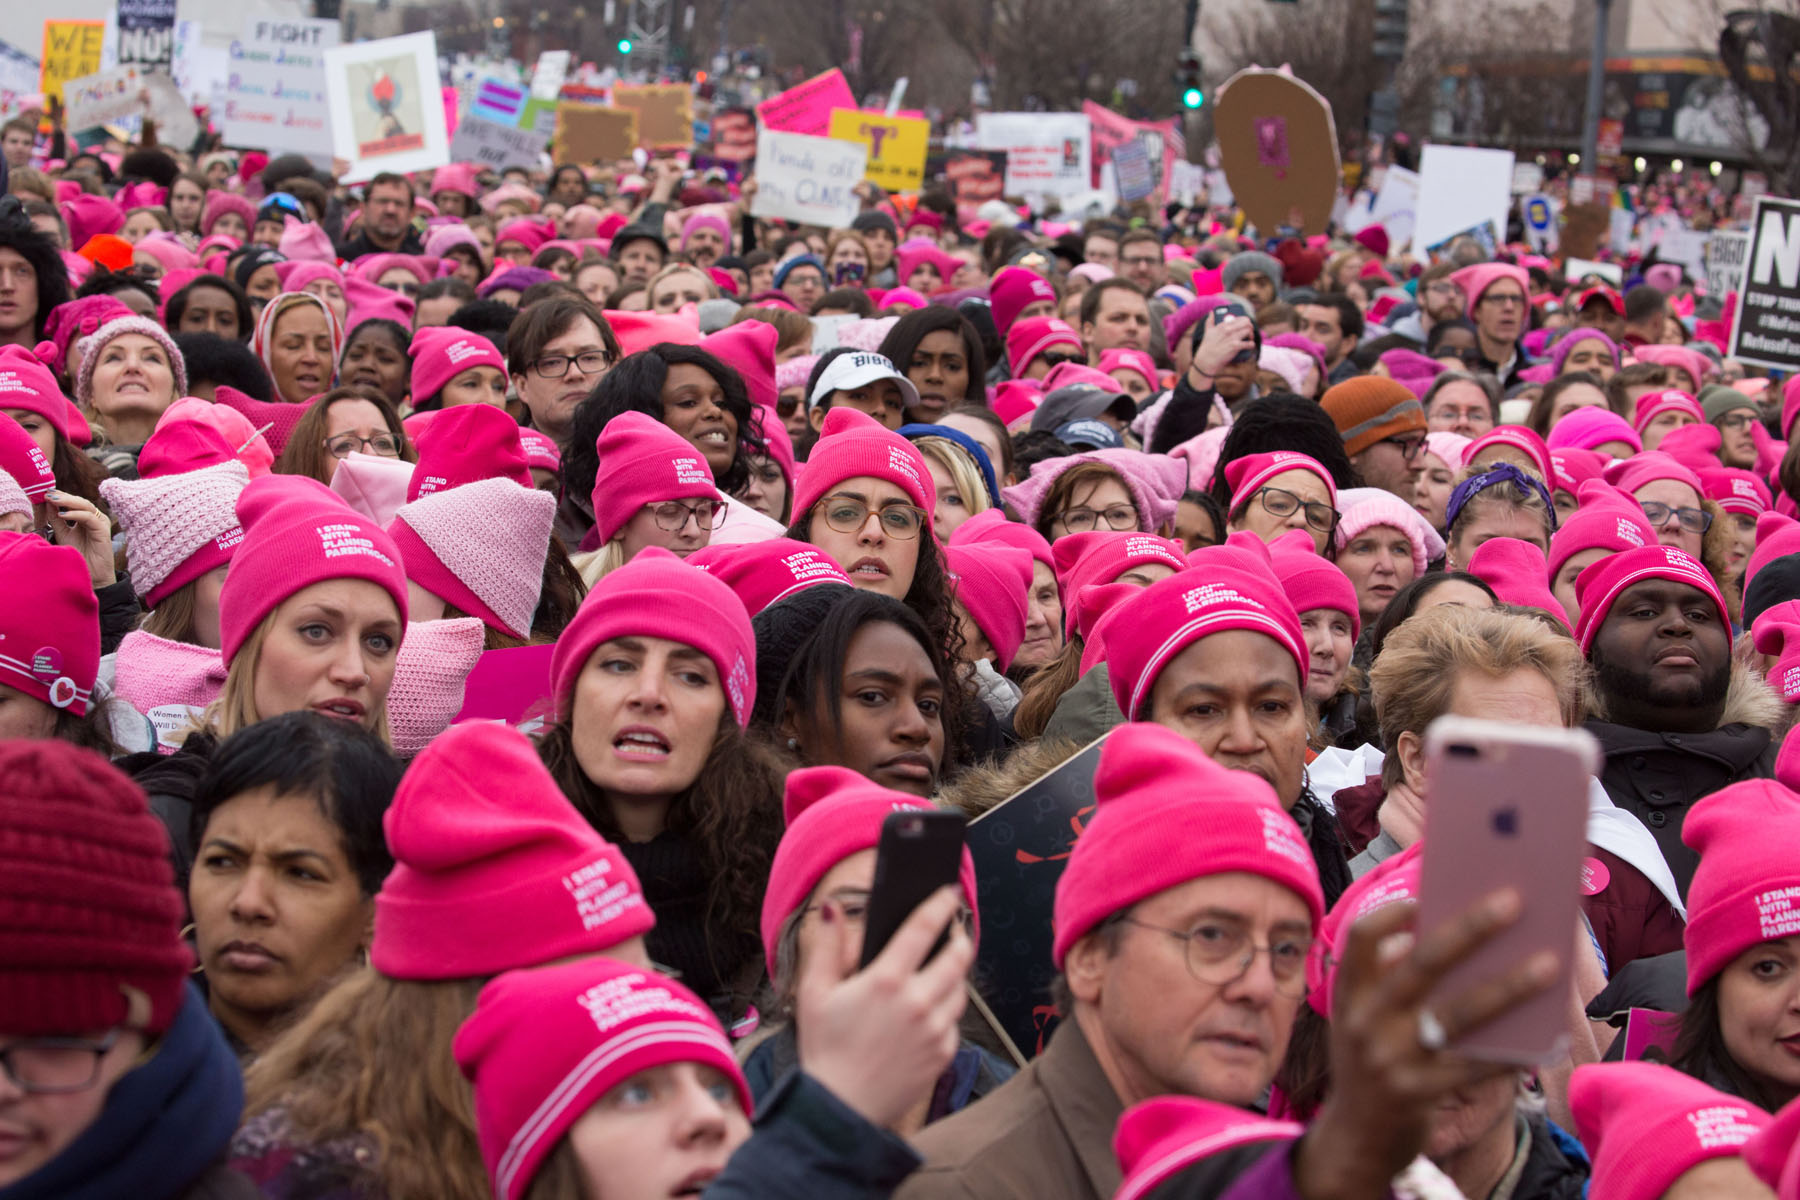 WOMENS_MARCH_KB_012116_200